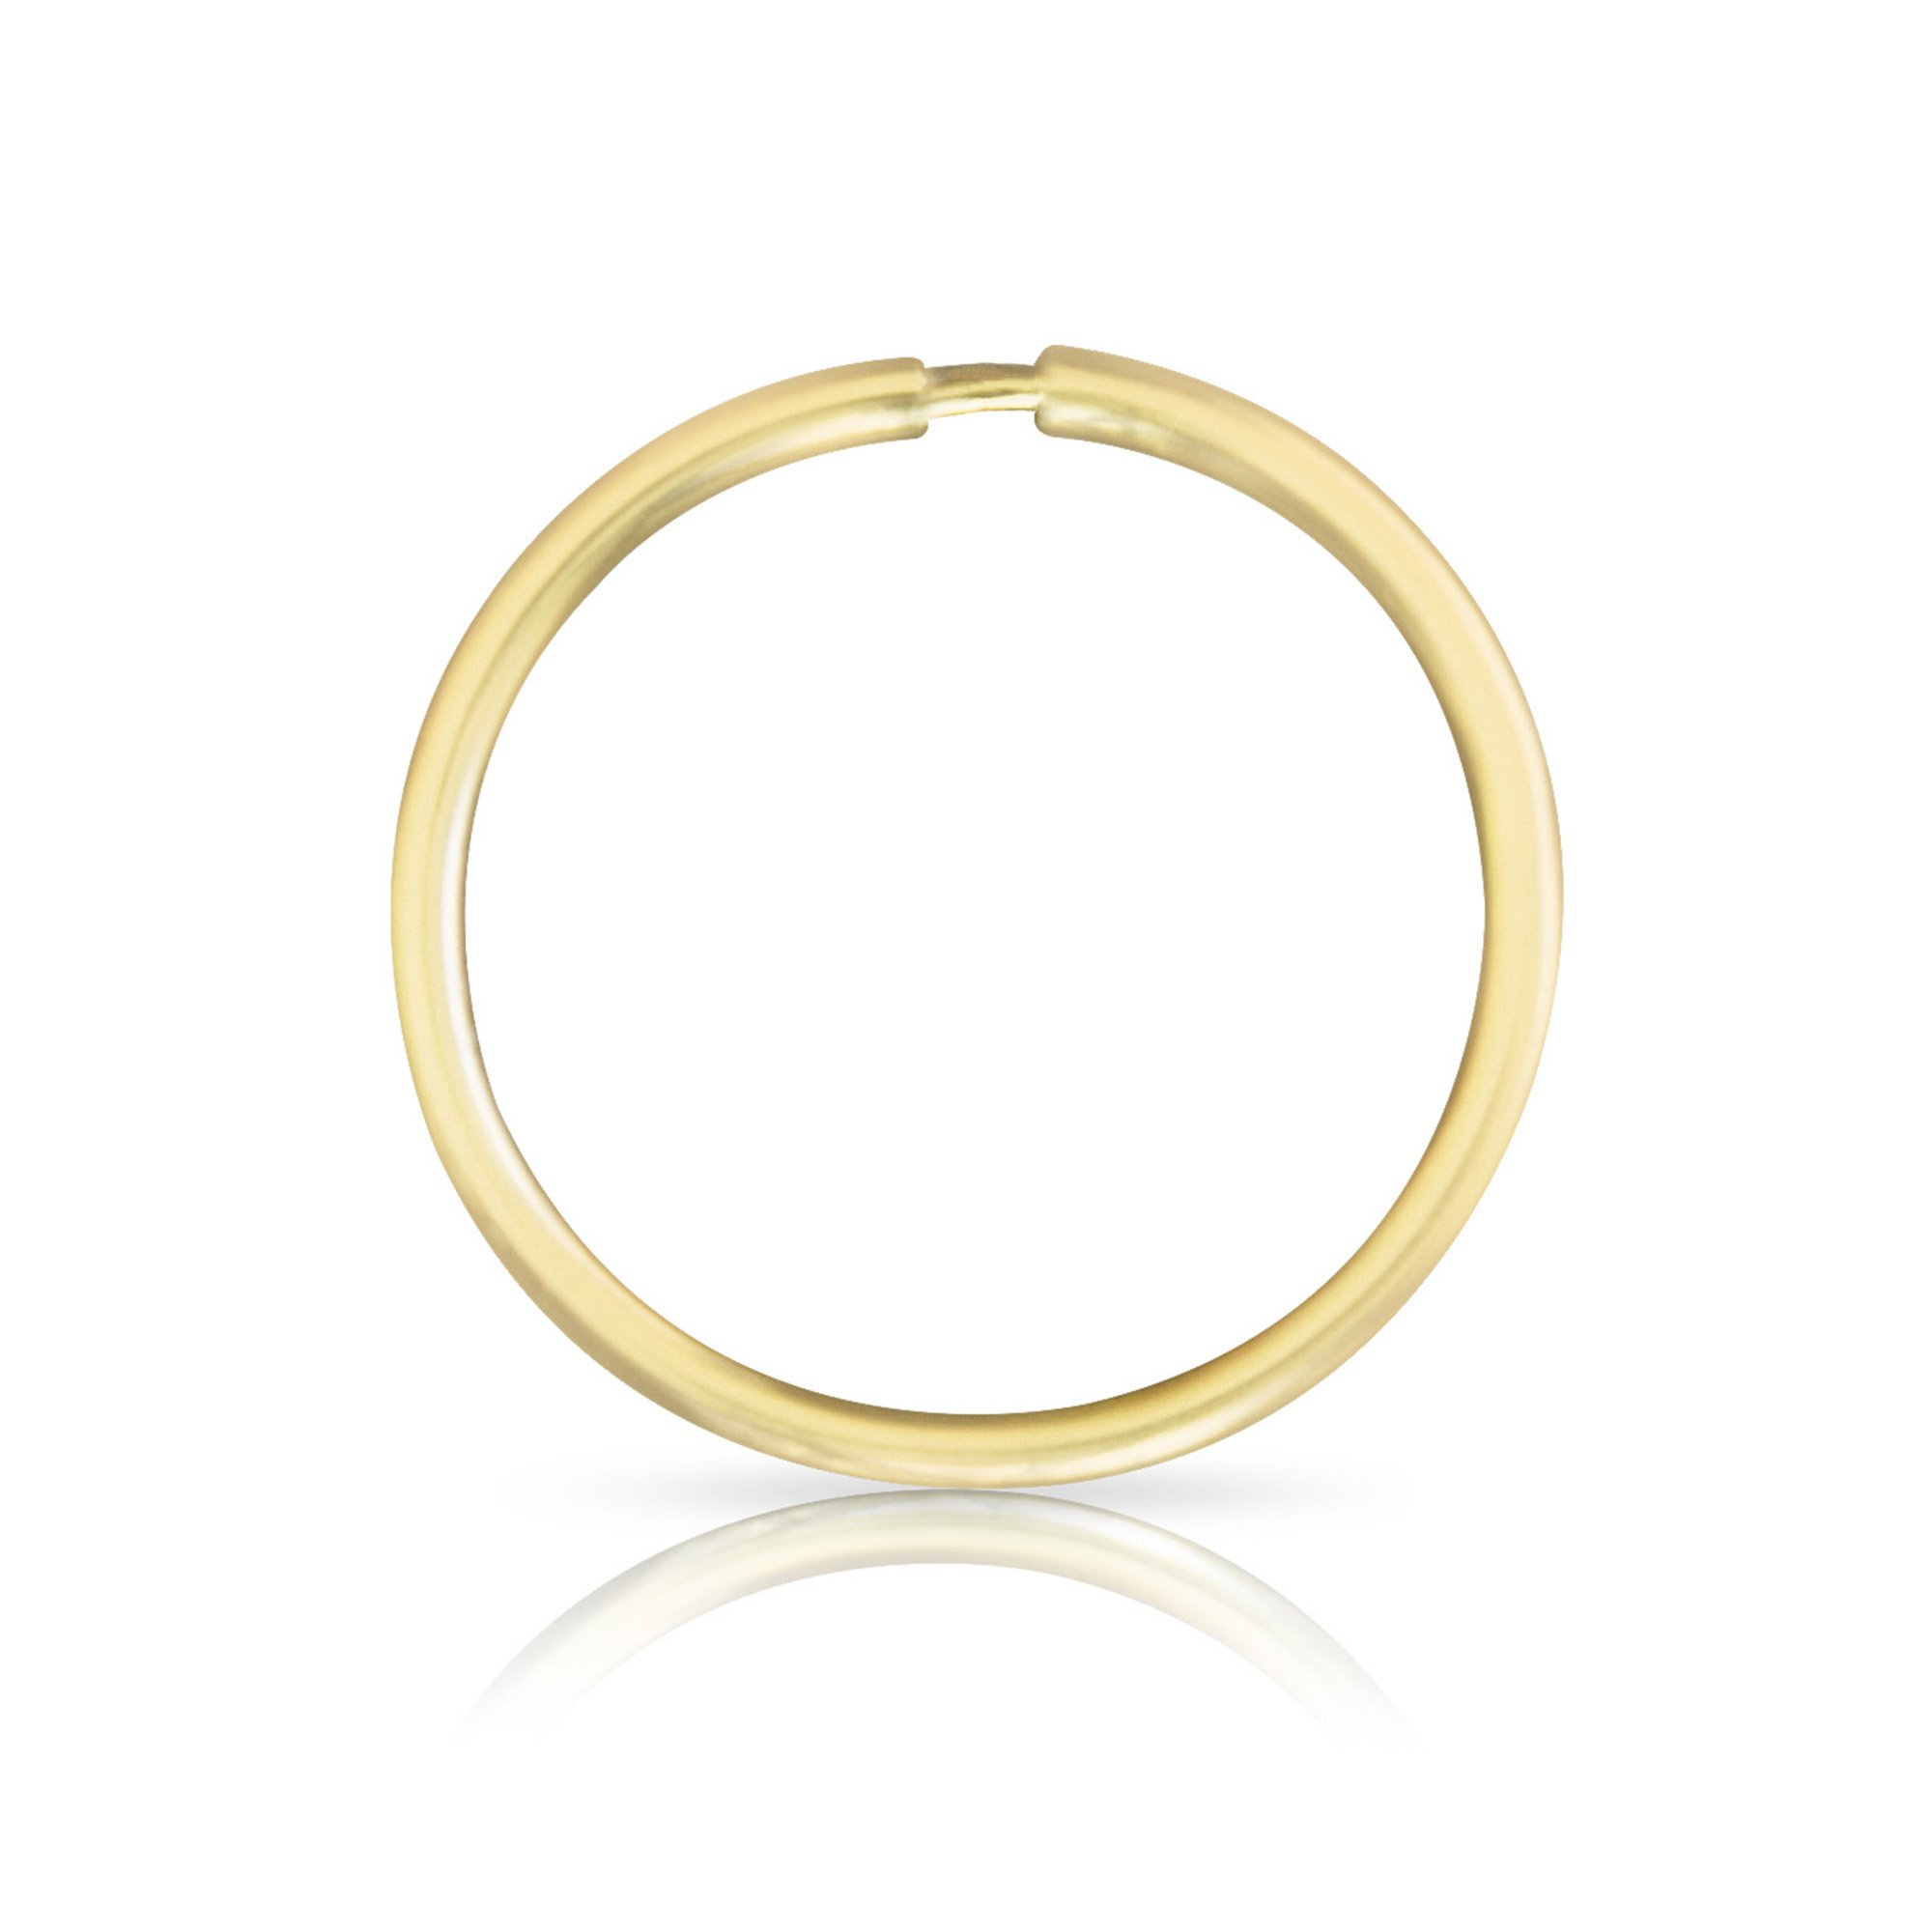 ONDAISY 1PCS 20G 8mm 14k Solid Real Gold Segment Septum Lip Nose Round Hoop Tragus Helix Cartilage Daith inner outer Conch Ring Ear Piercing Earring